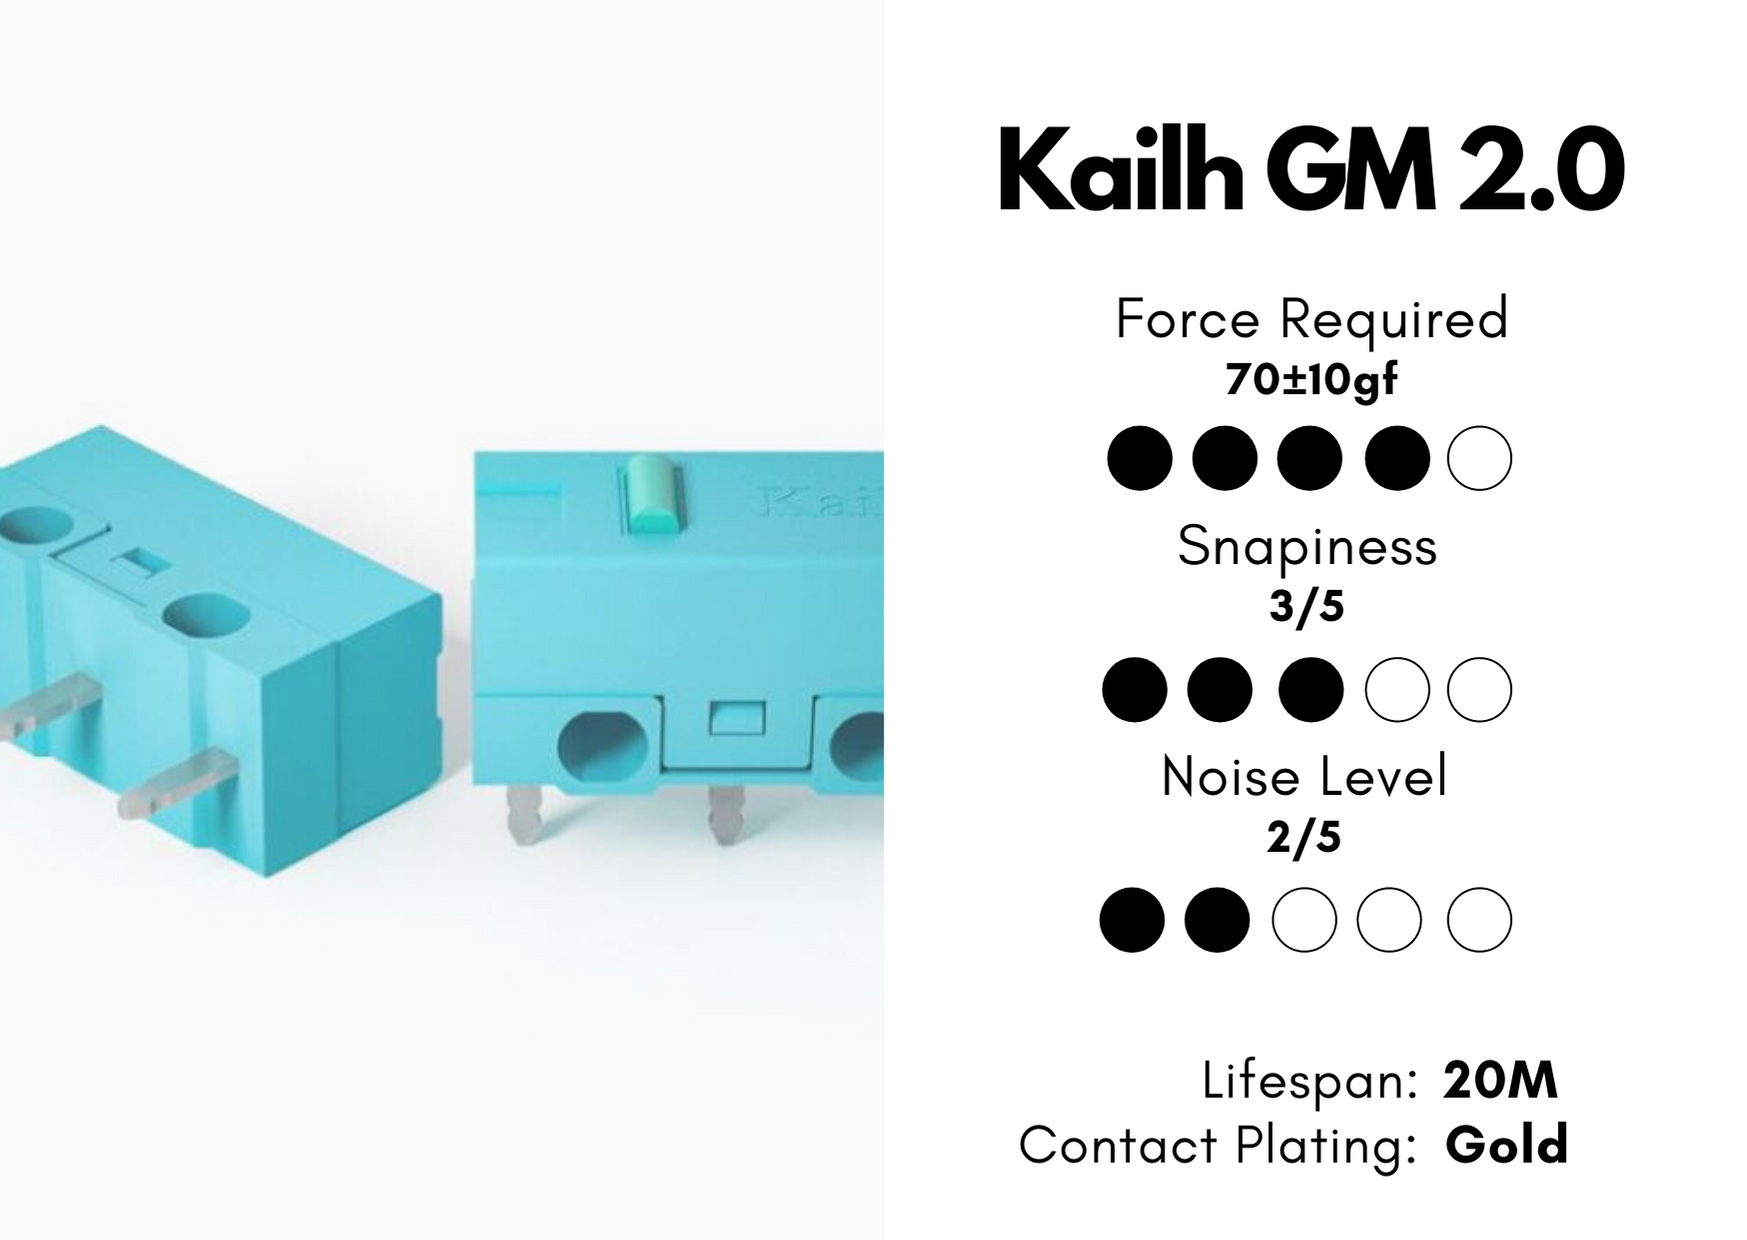 kailh gm 2.0